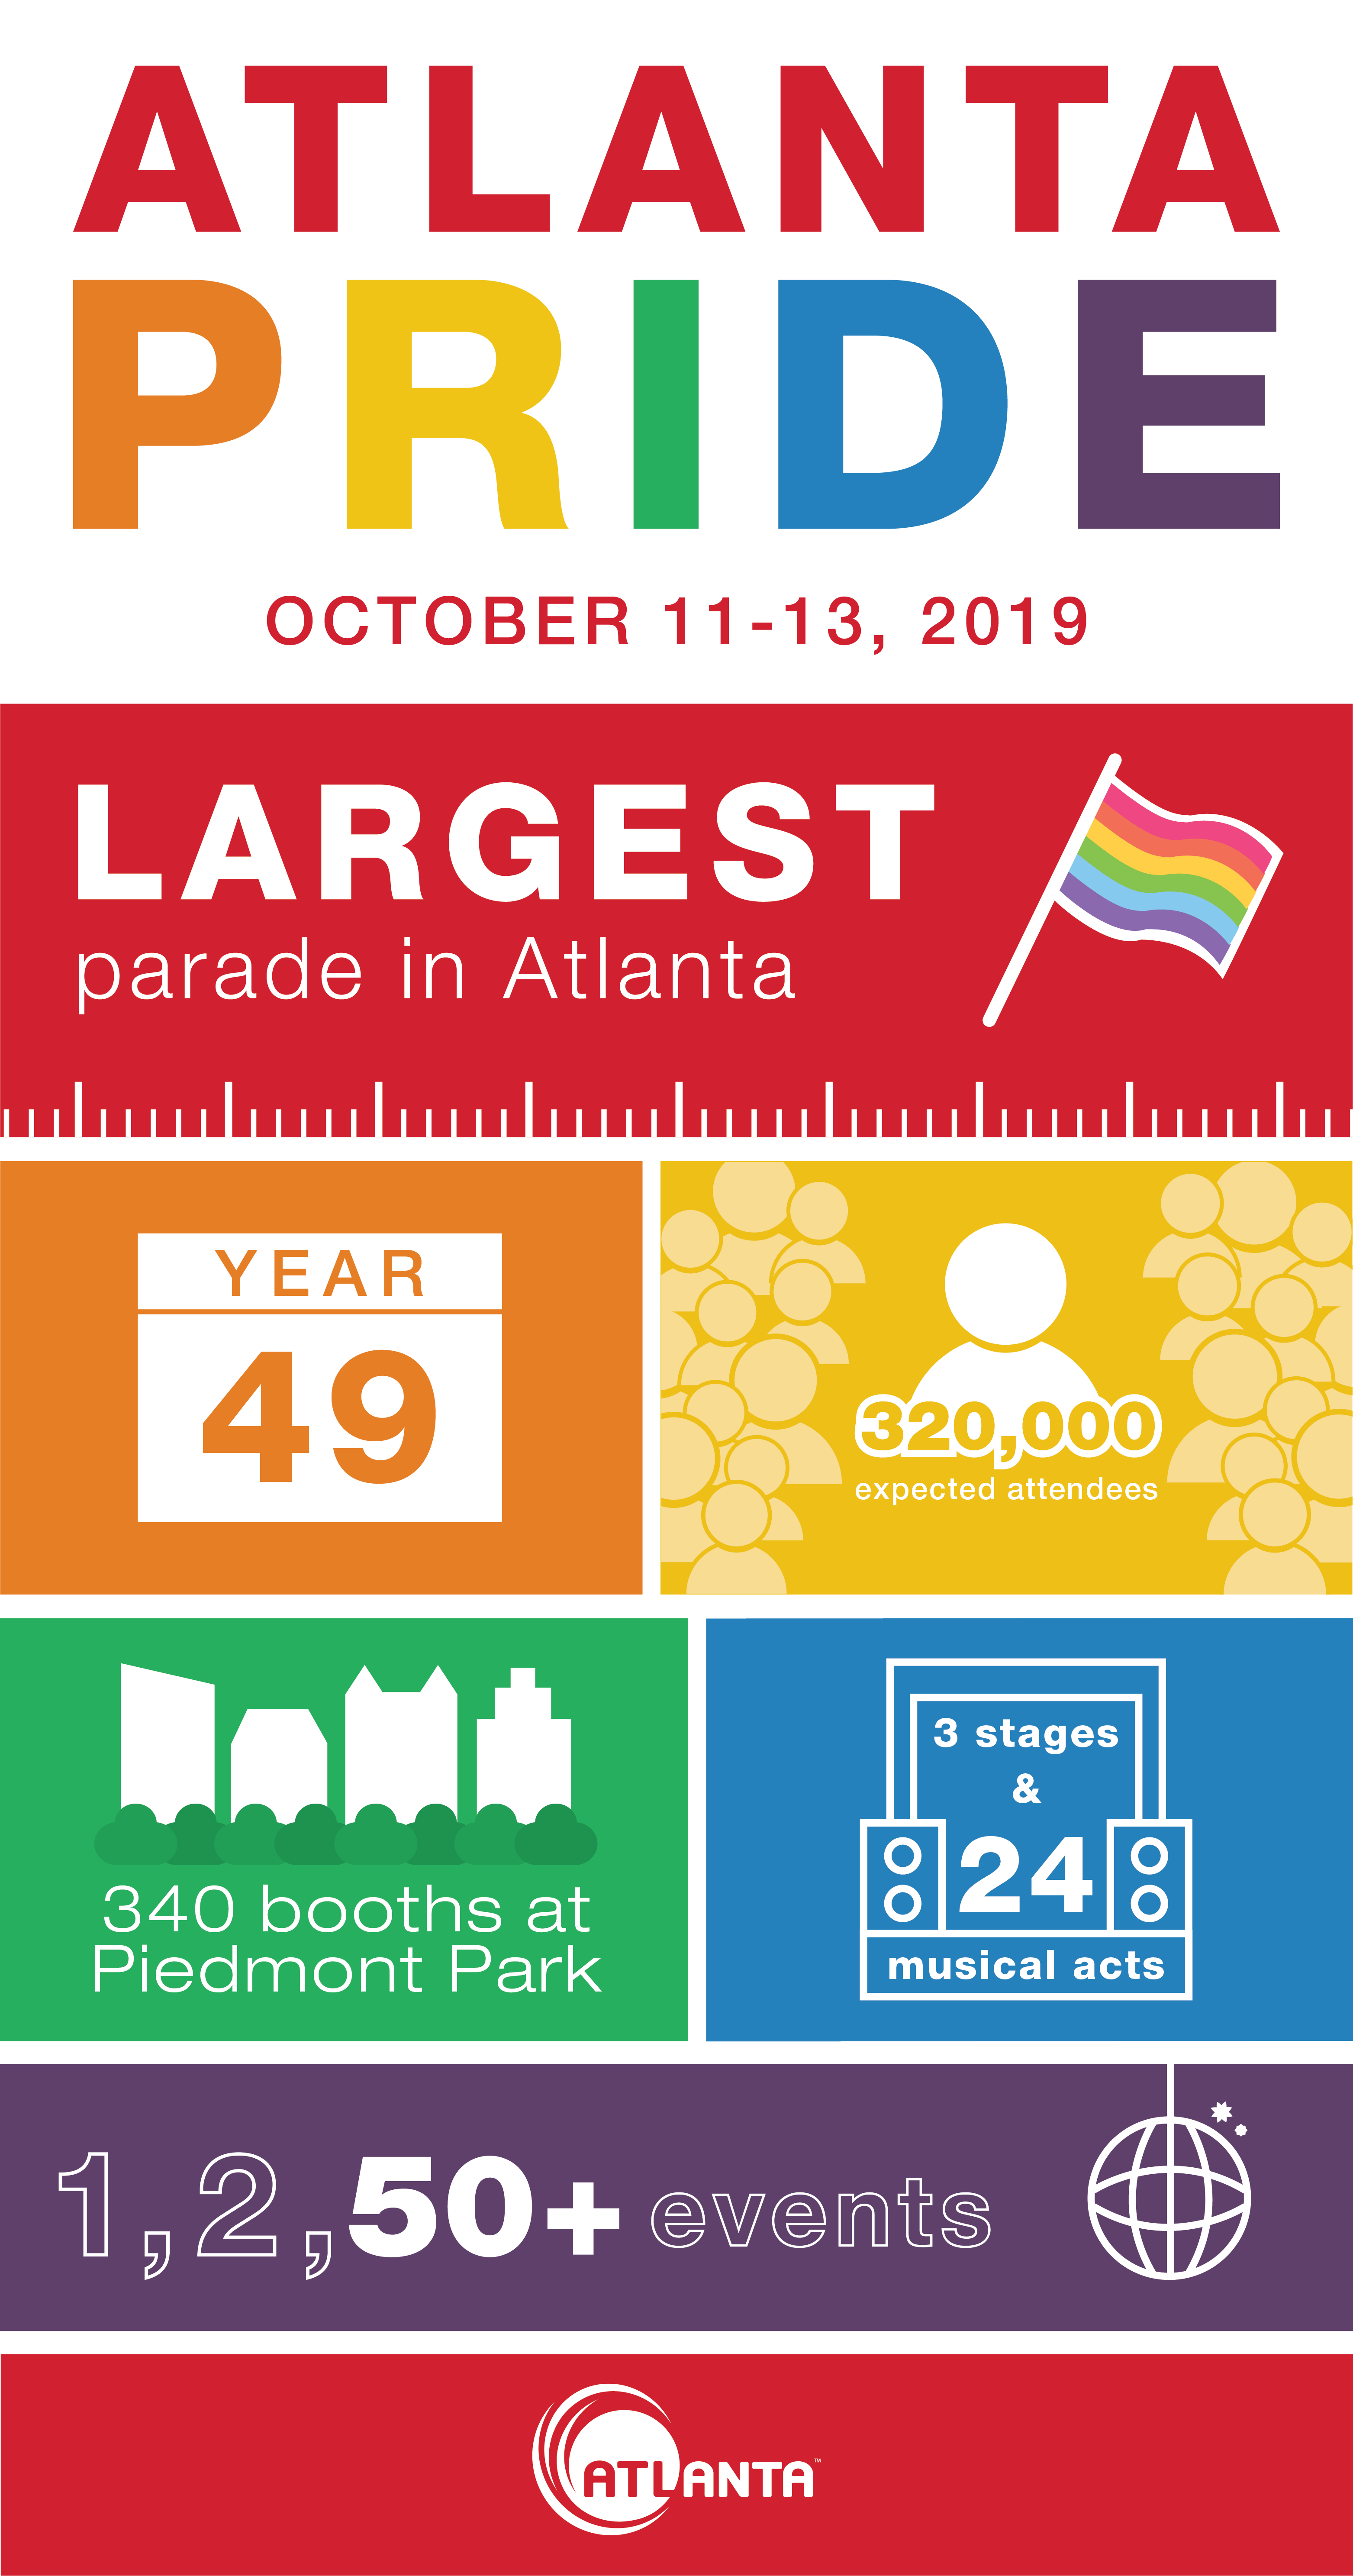 1019-Pride-infographic-finl.png